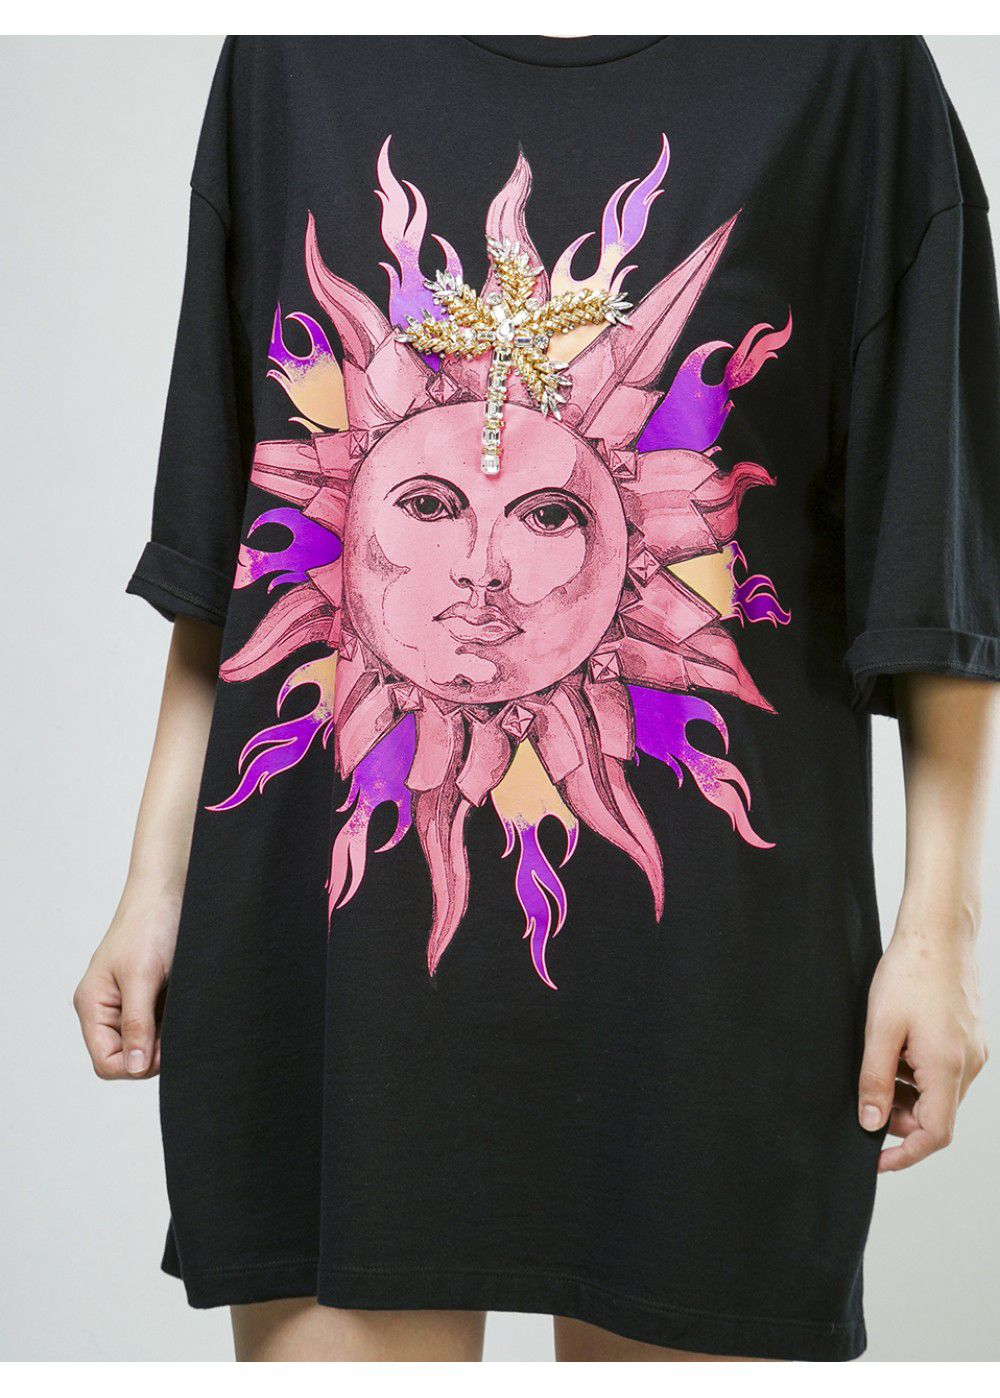 Fausto Puglisi T-Shirt in Black Pink